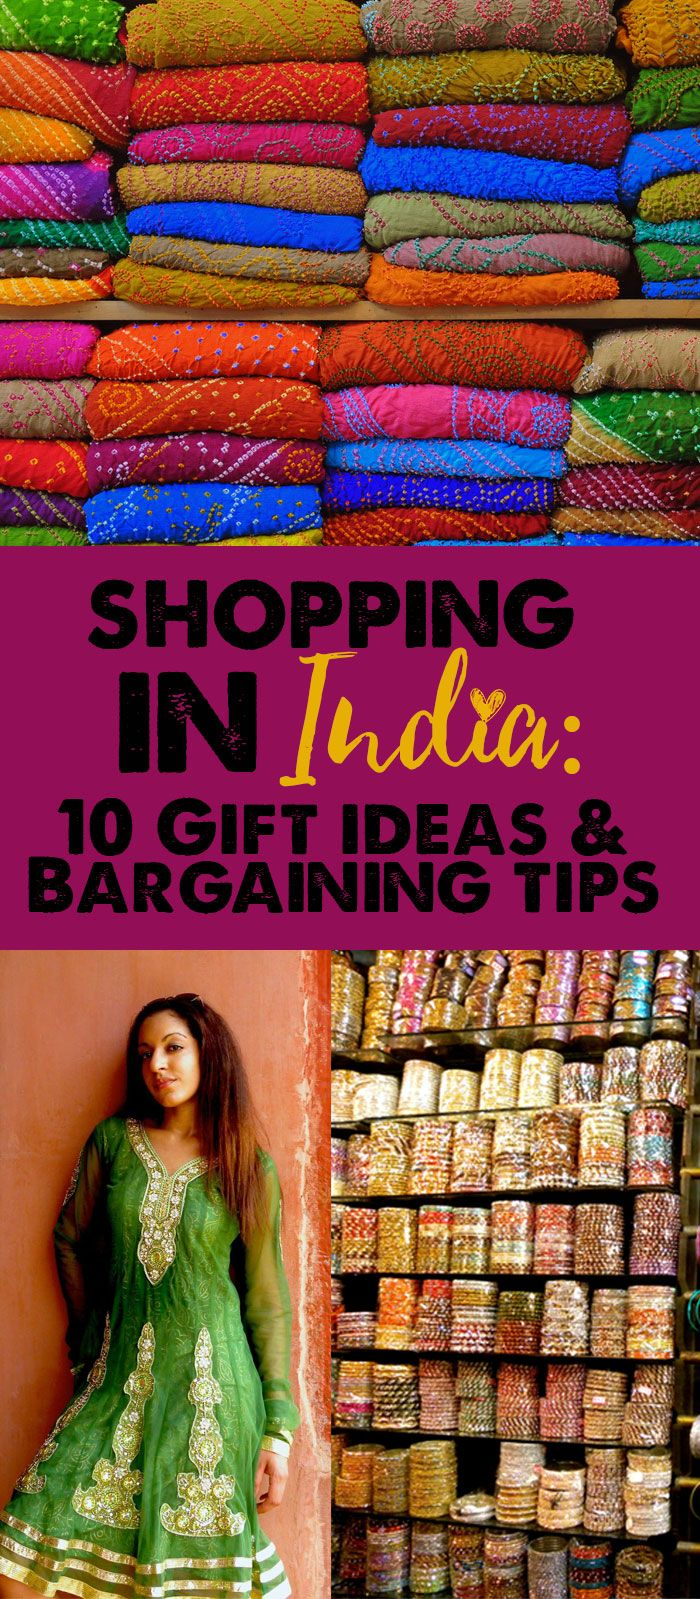 Shopping in India: 10 Gift Ideas and Bargaining Tips - Travel Lushes